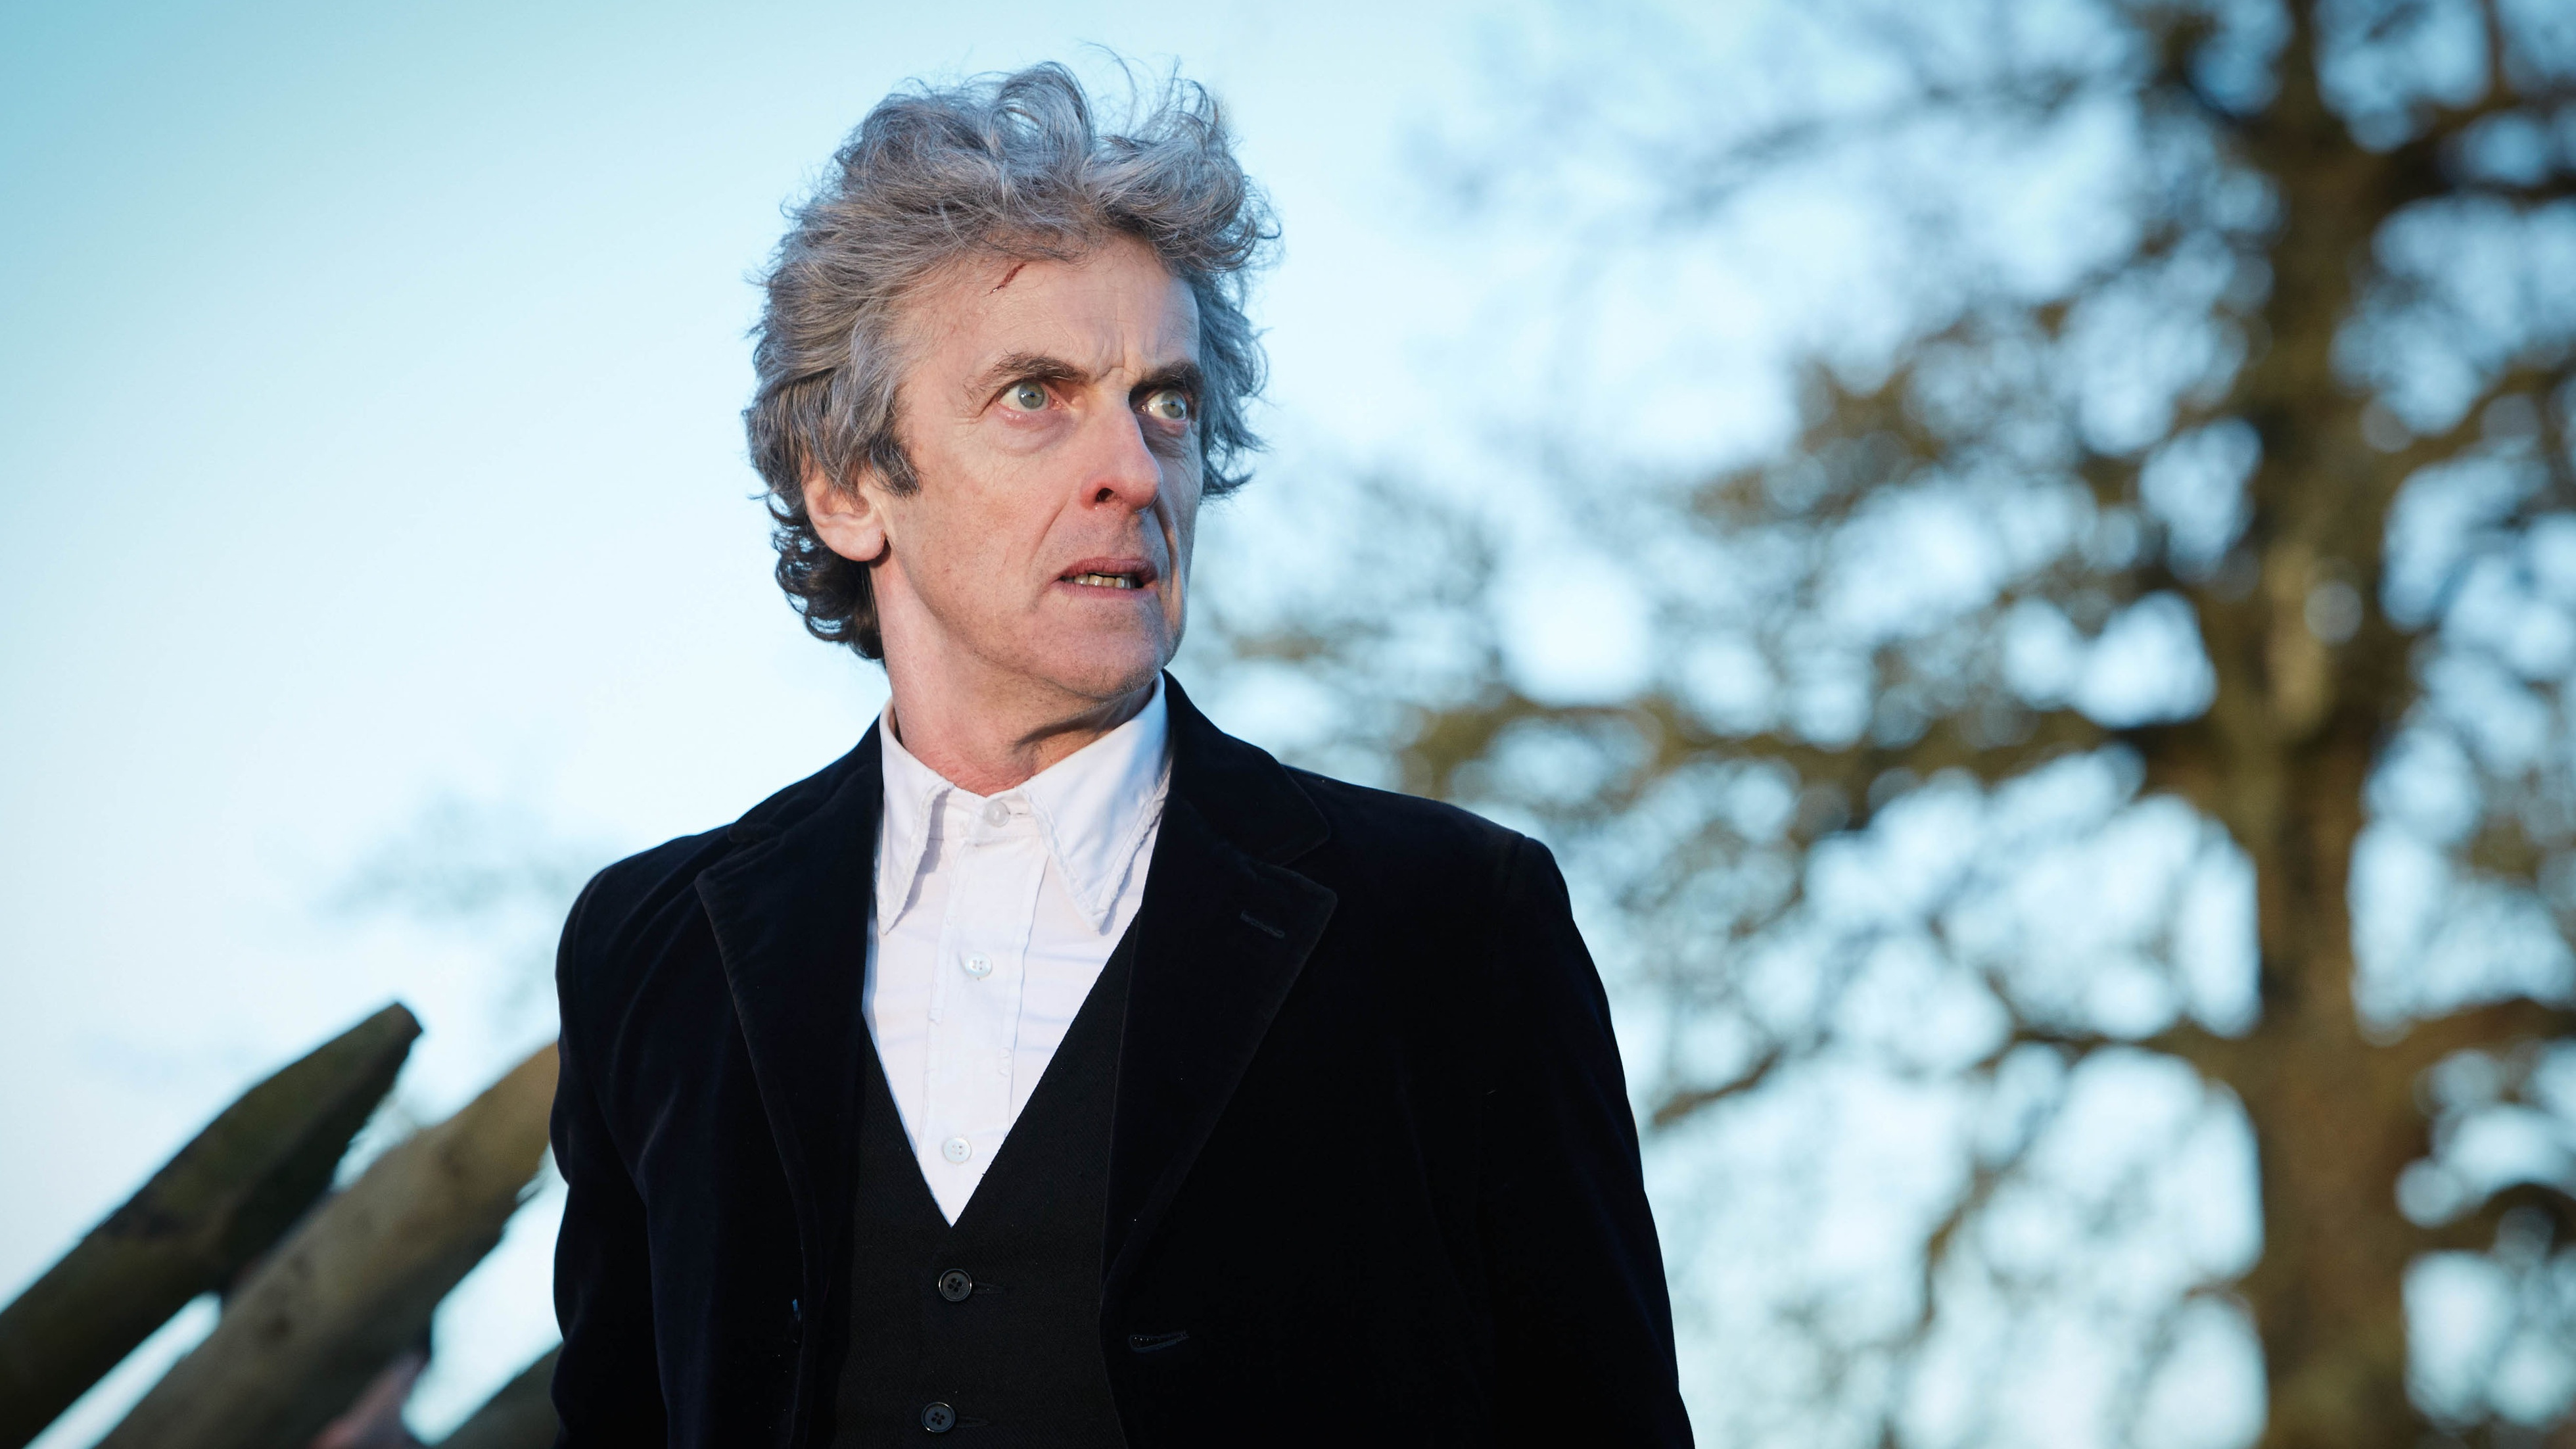 Peter Capaldi as the Doctor (BBC)